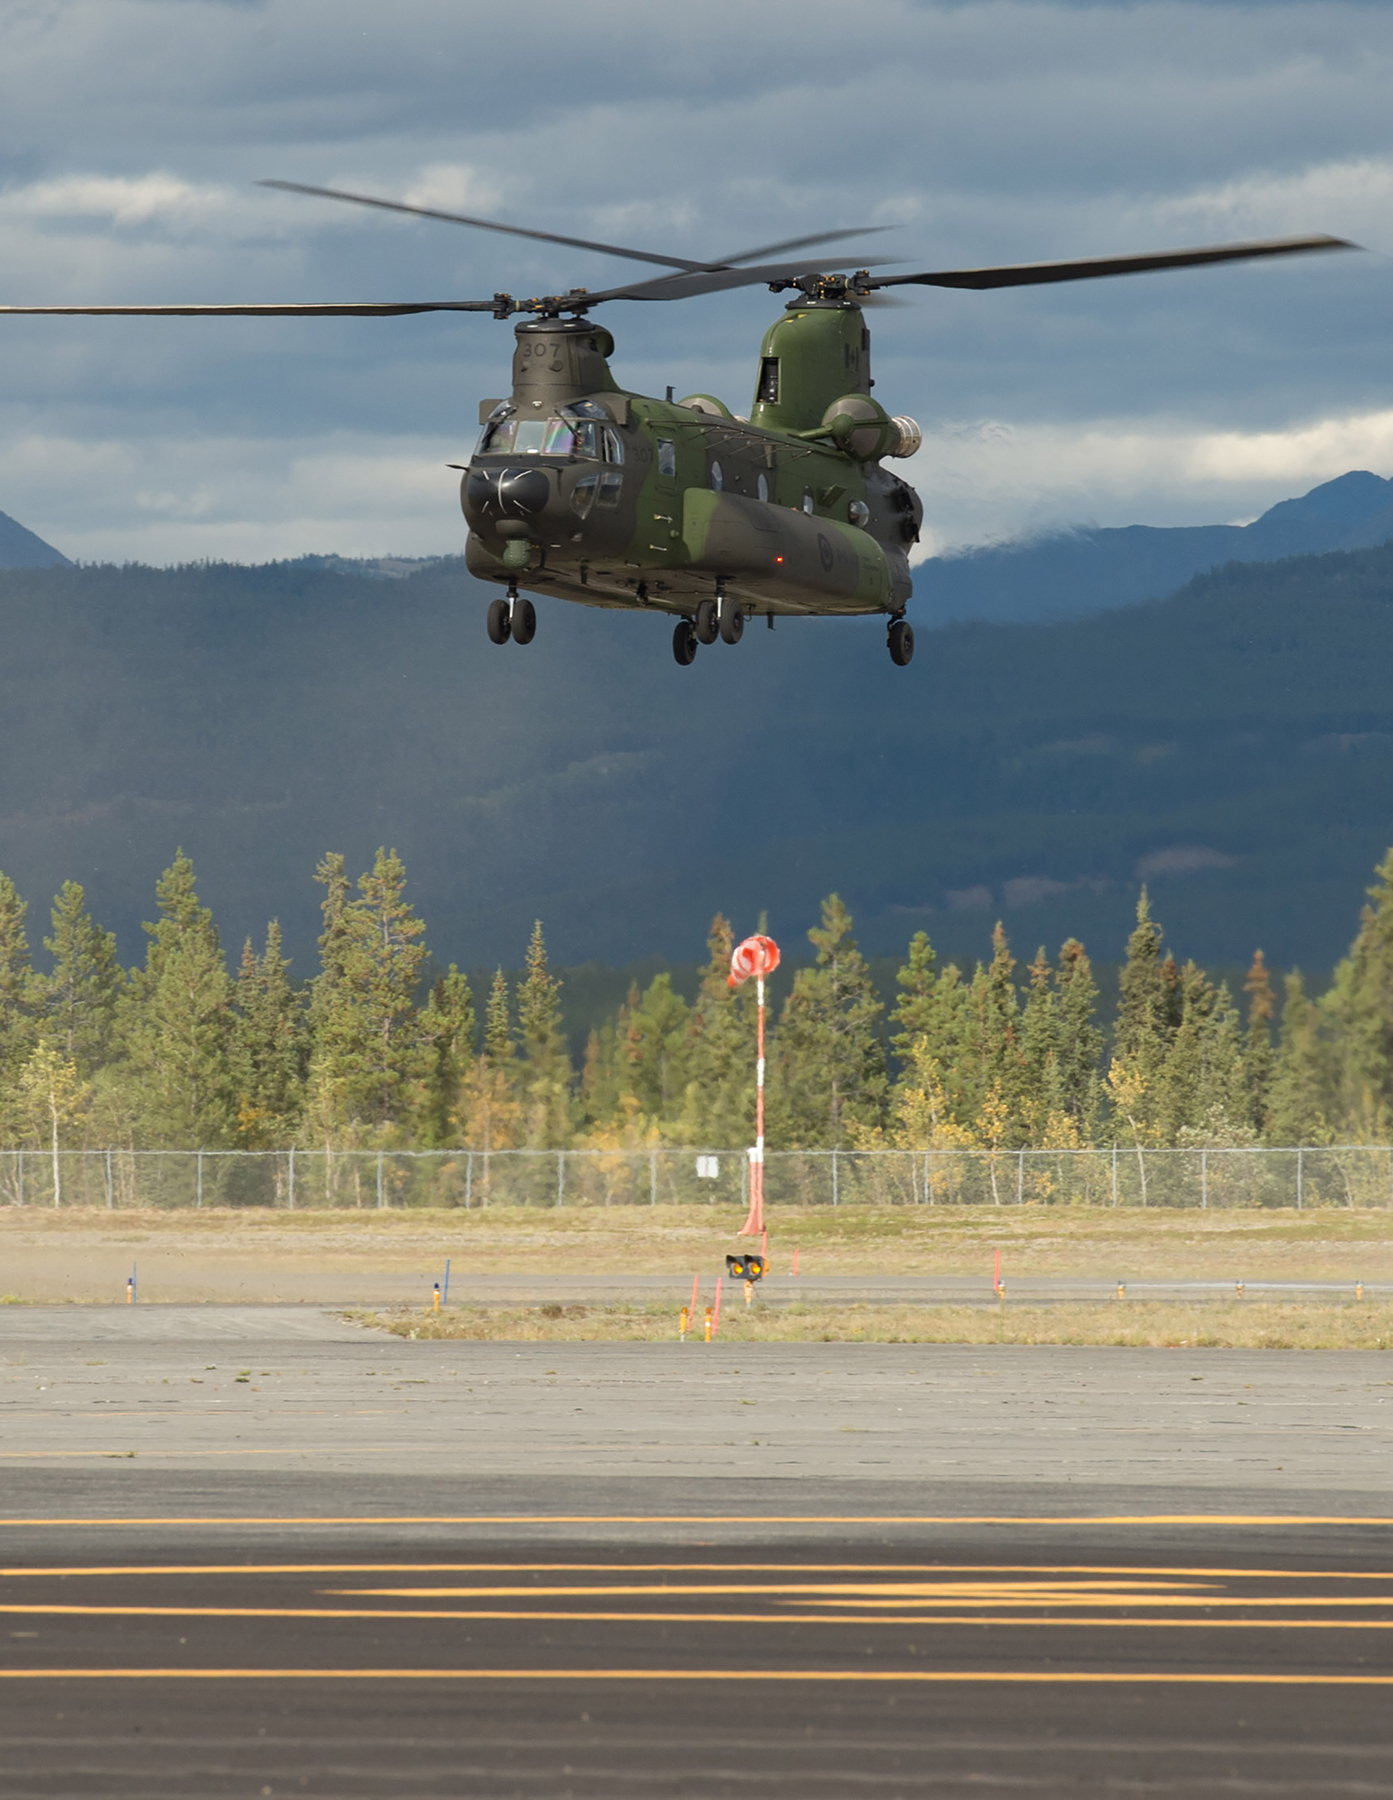 A CH-147 Chinook helicopter from 450 Tactical Helicopter Squadron, based in Petawawa, Ontario, prepares to land at Erik Nielson Airport in Whitehorse, Yukon, on August 24, 2016, during Nanook 2016, an annual sovereignty operation held in Canada's North. PHOTO: Corporal Chase Miller, SU11-2016-1061-050